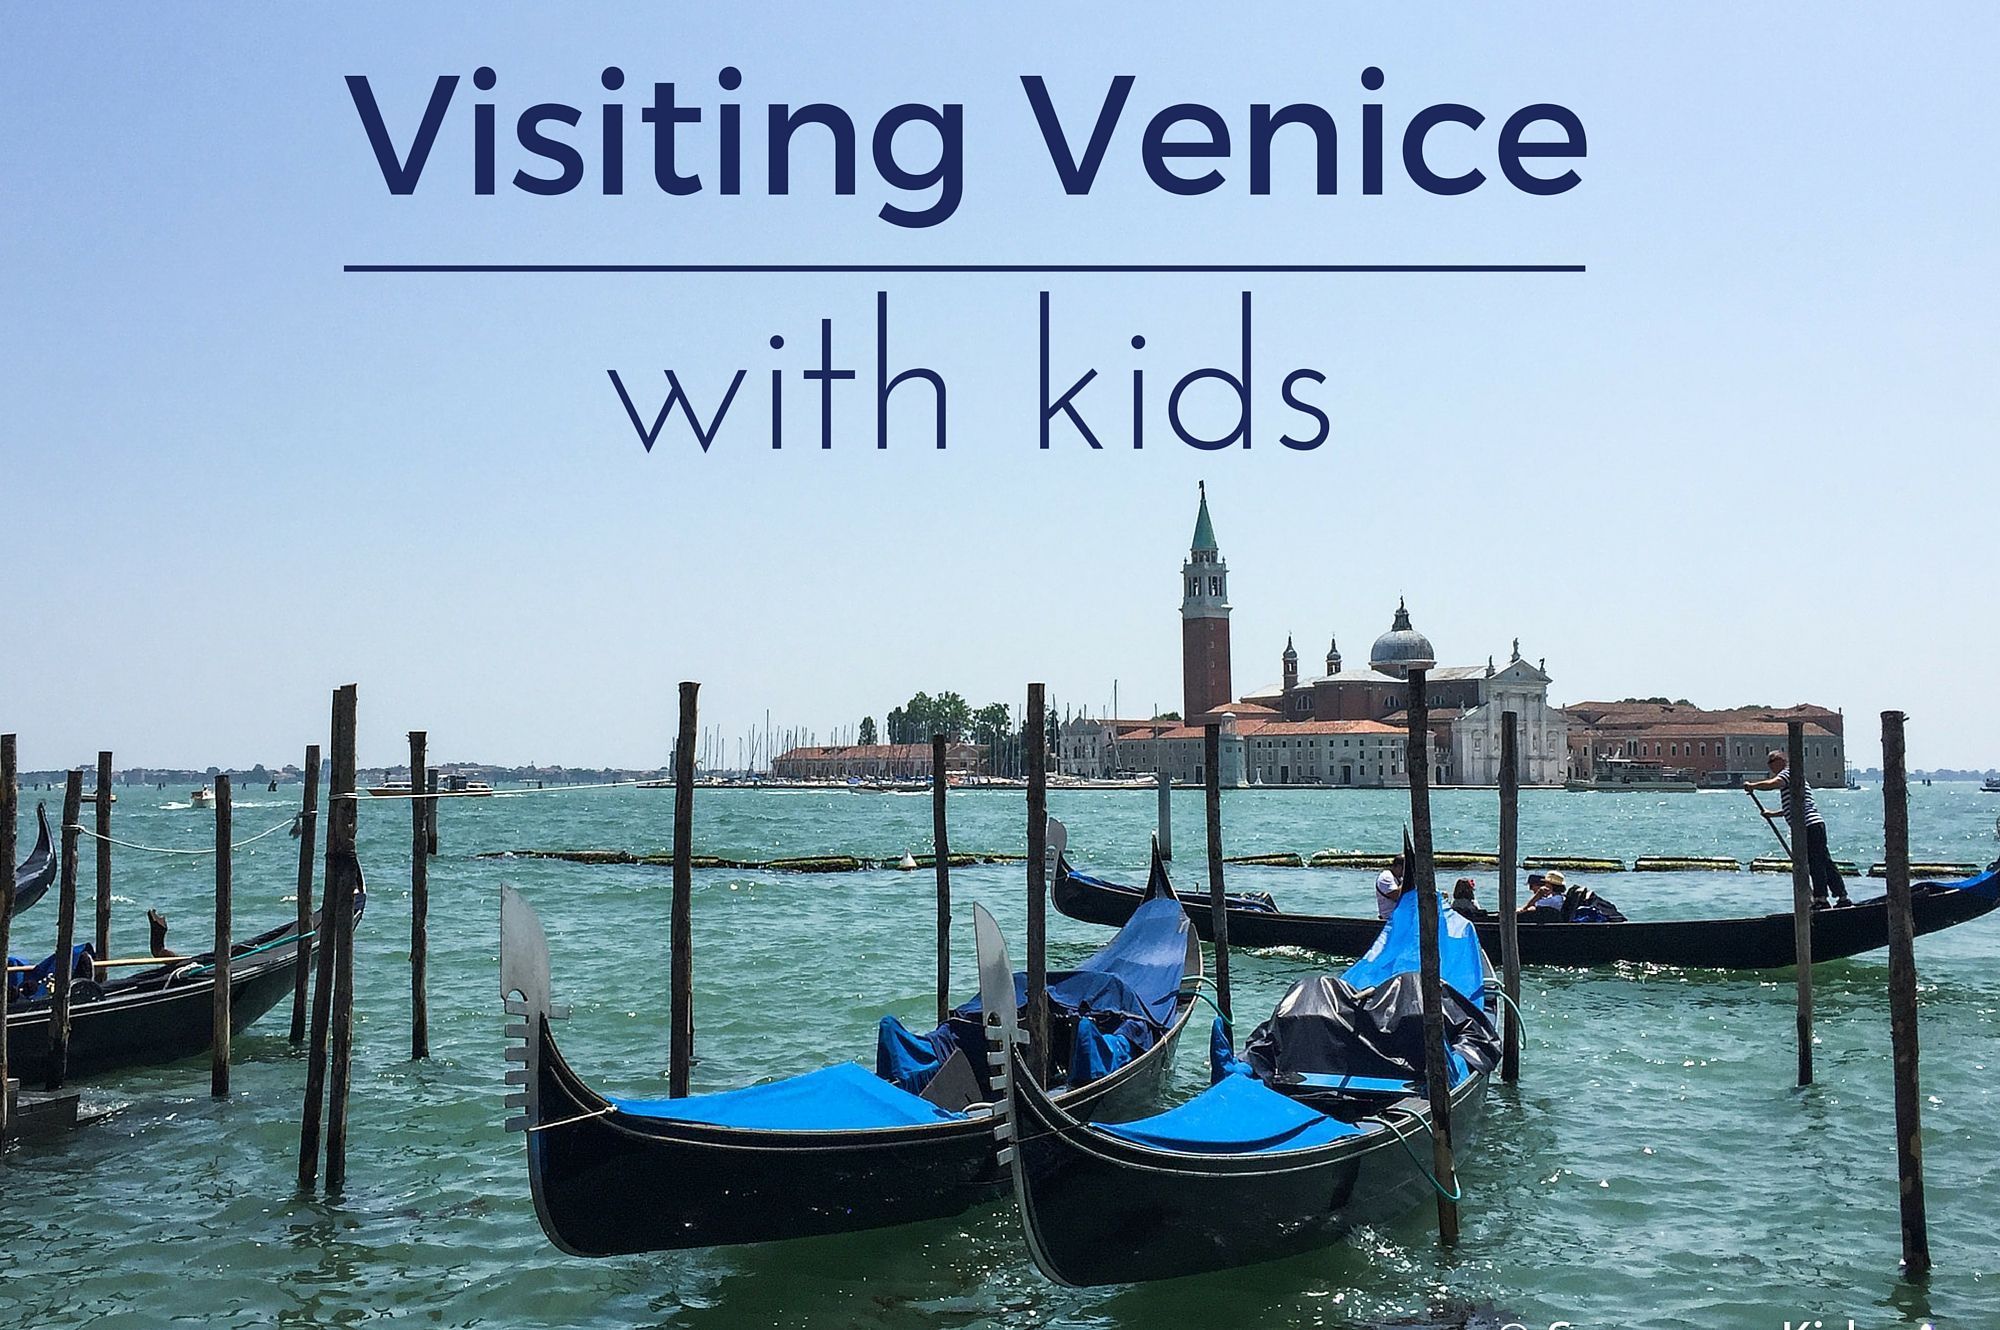 Saucepan Kids visit Venice - Things to do in Venice with kids